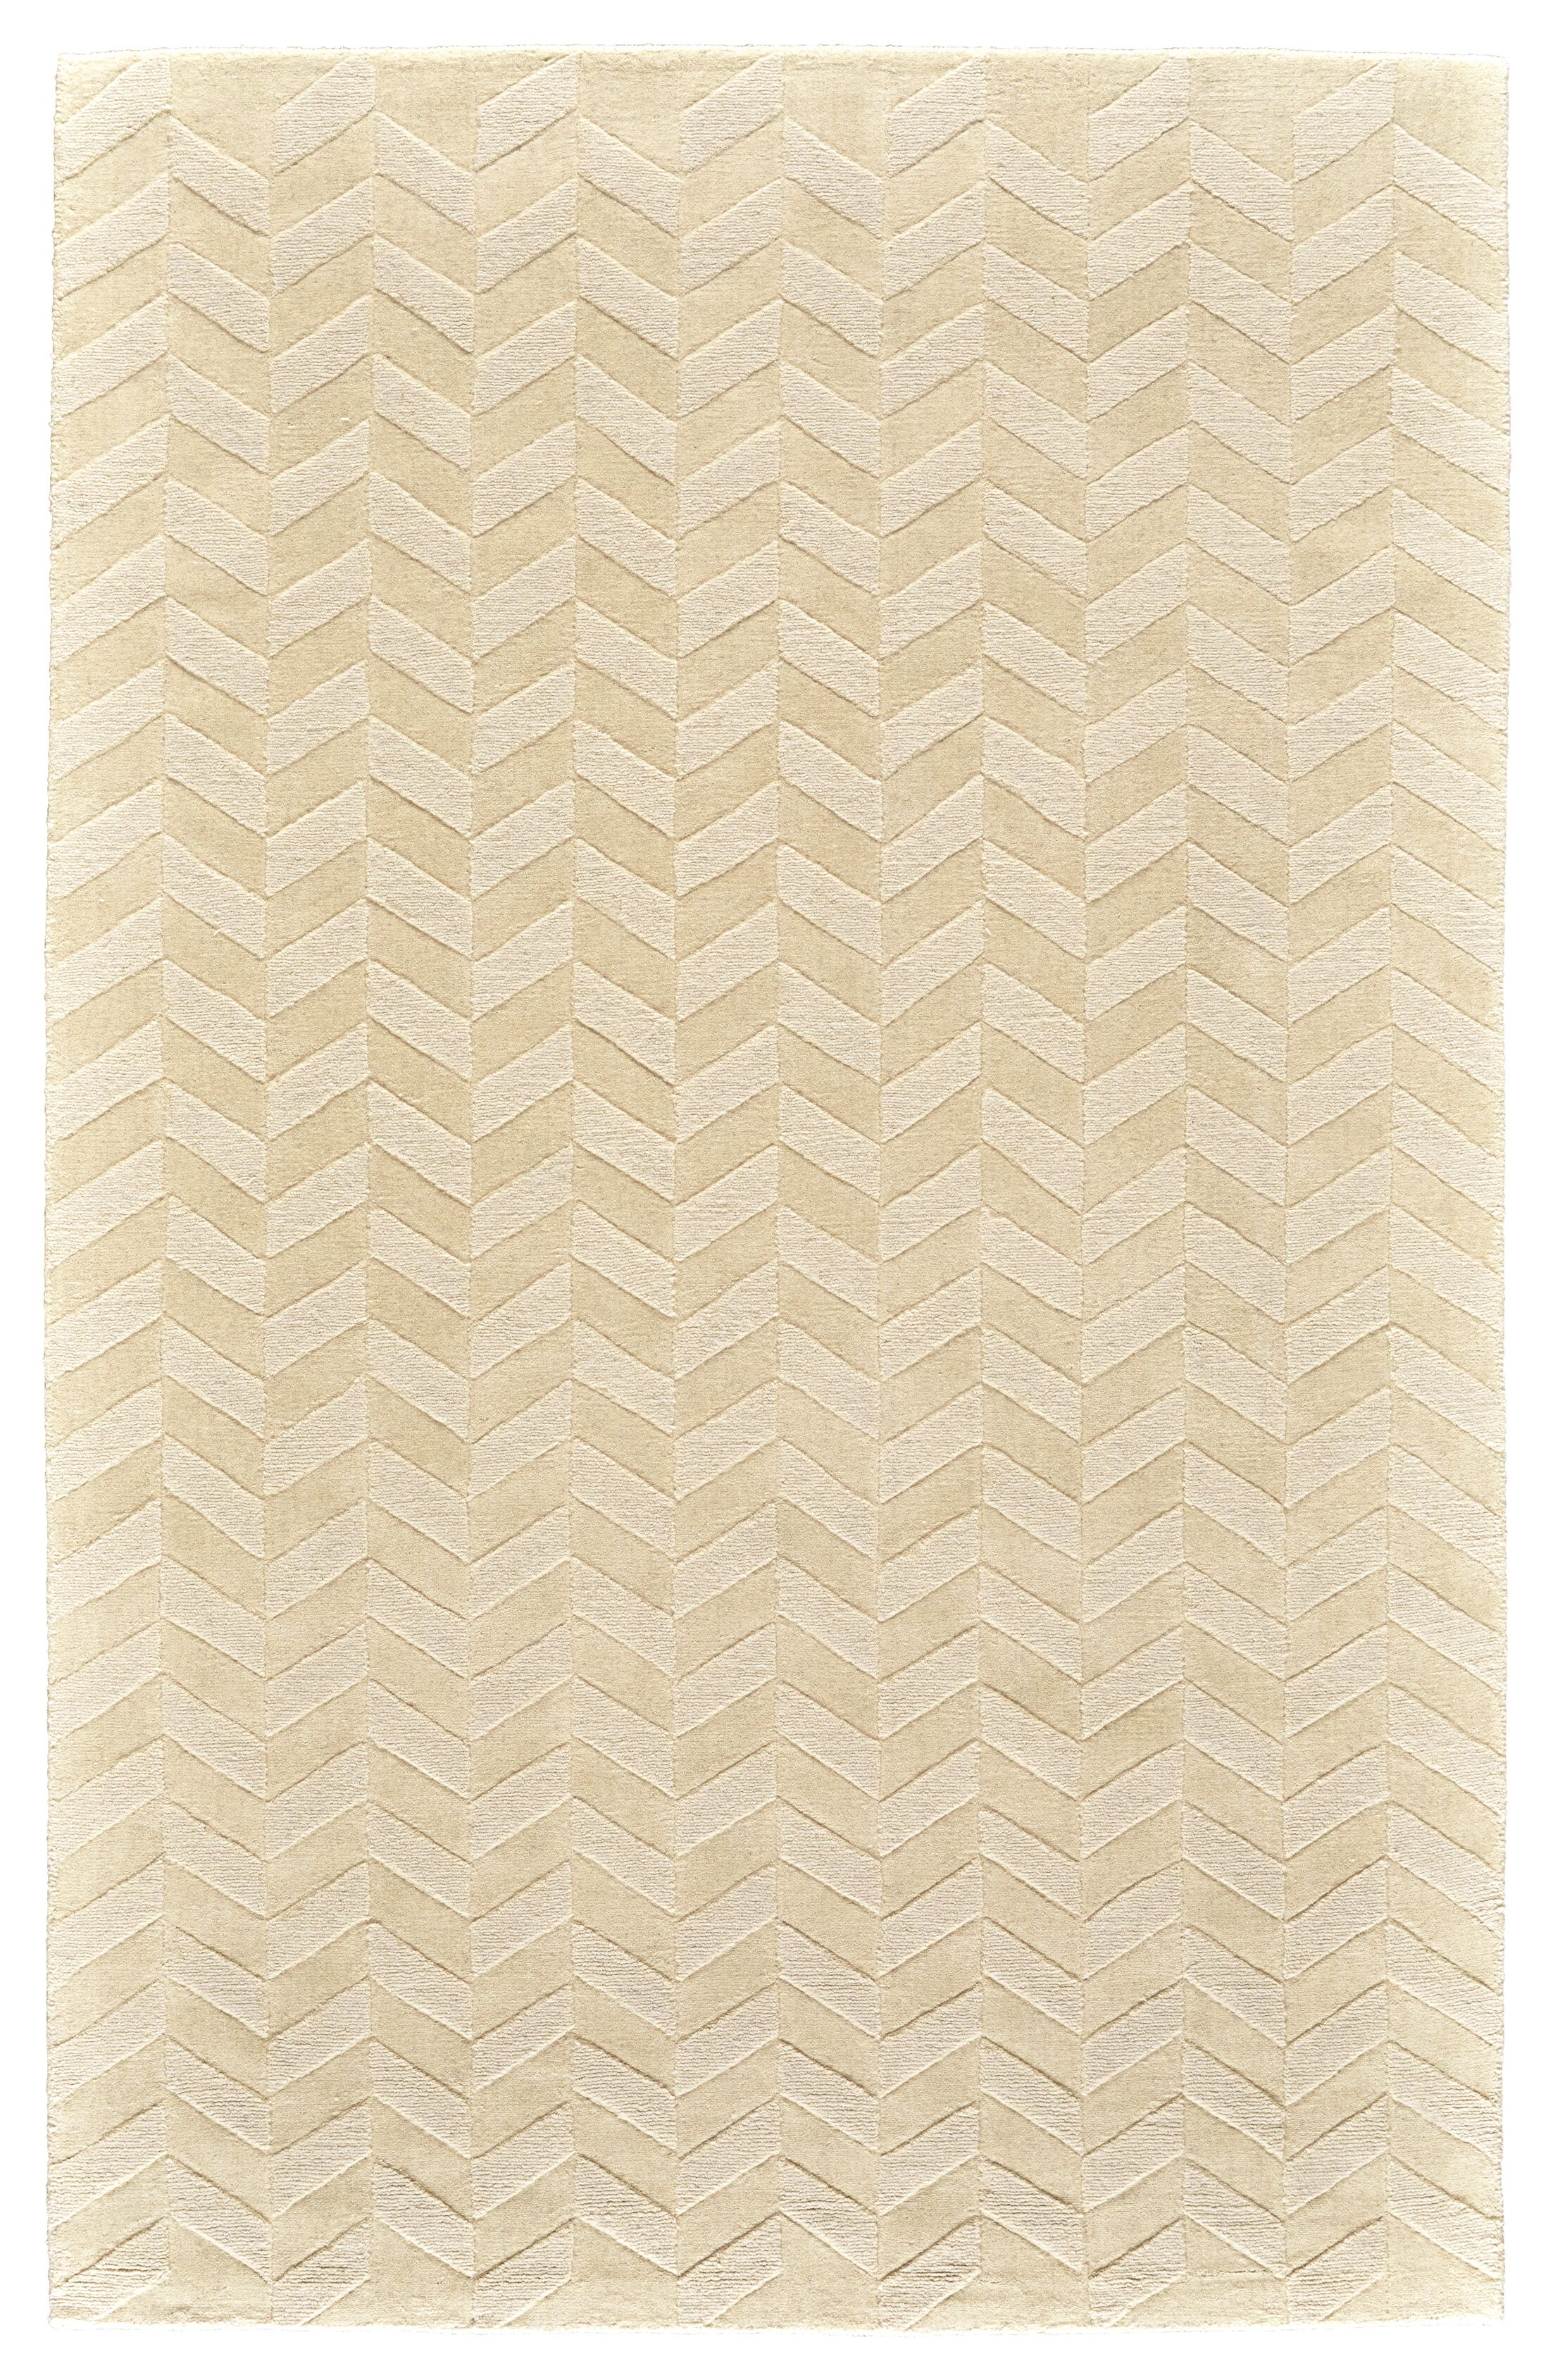 Mcnab Hand-Tufted Wool Ivory Area Rug Rug Size: Rectangle 3'6